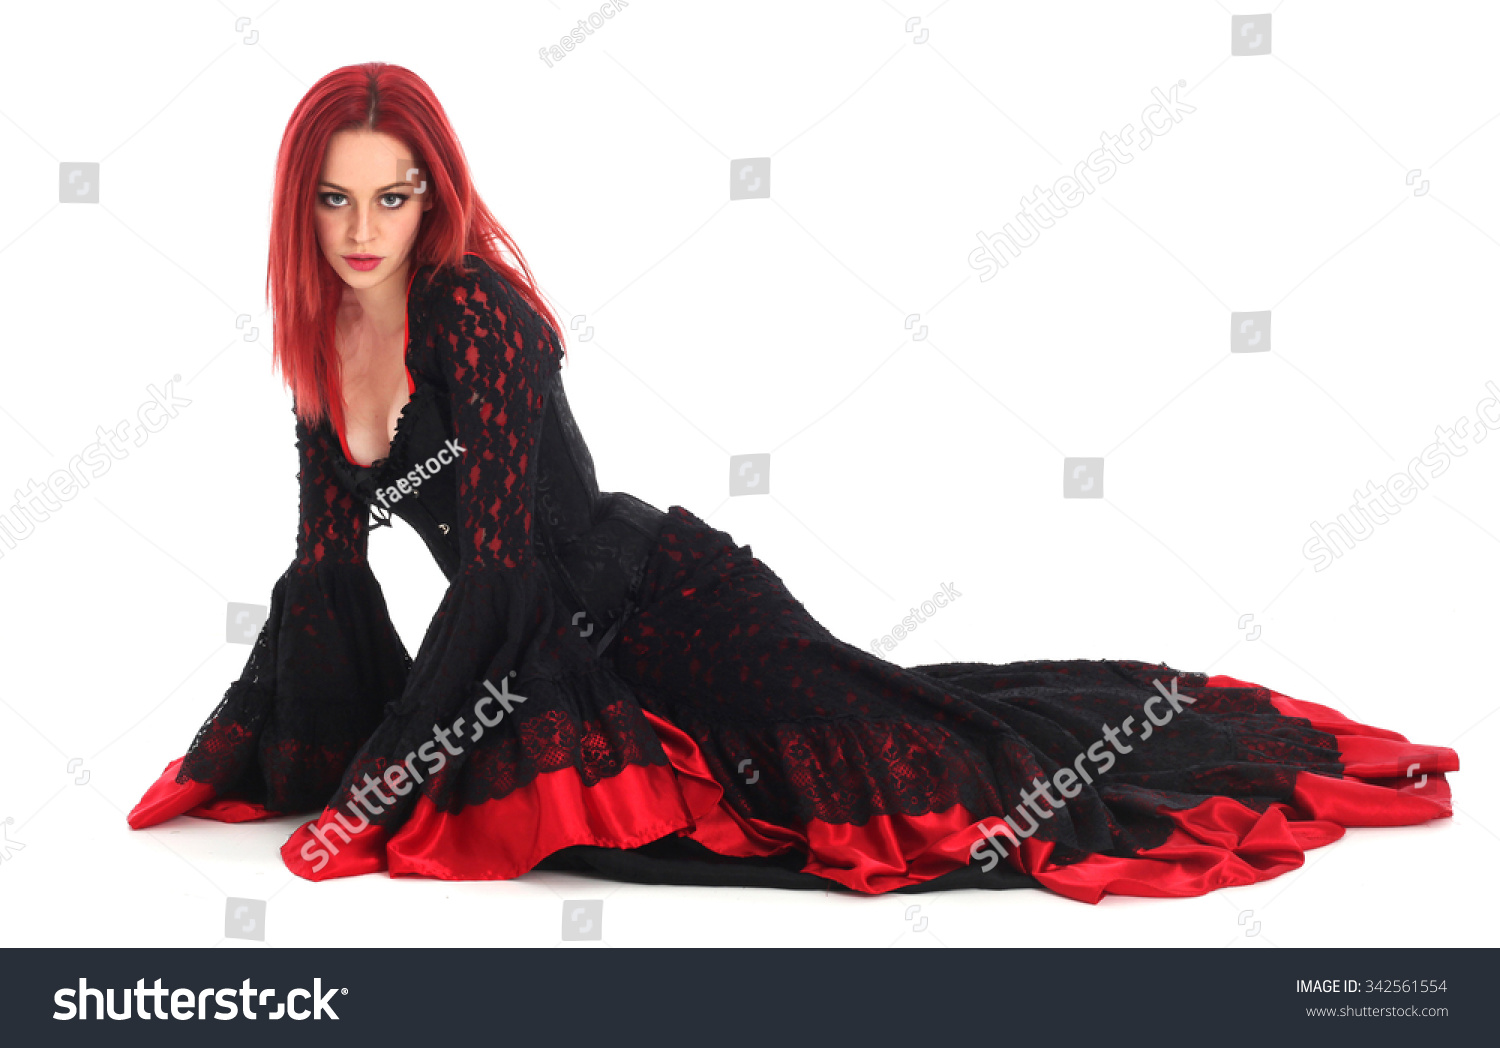 3b43617e77 Beautiful Young Girl Red Hair Wearing Stock Photo (Edit Now ...